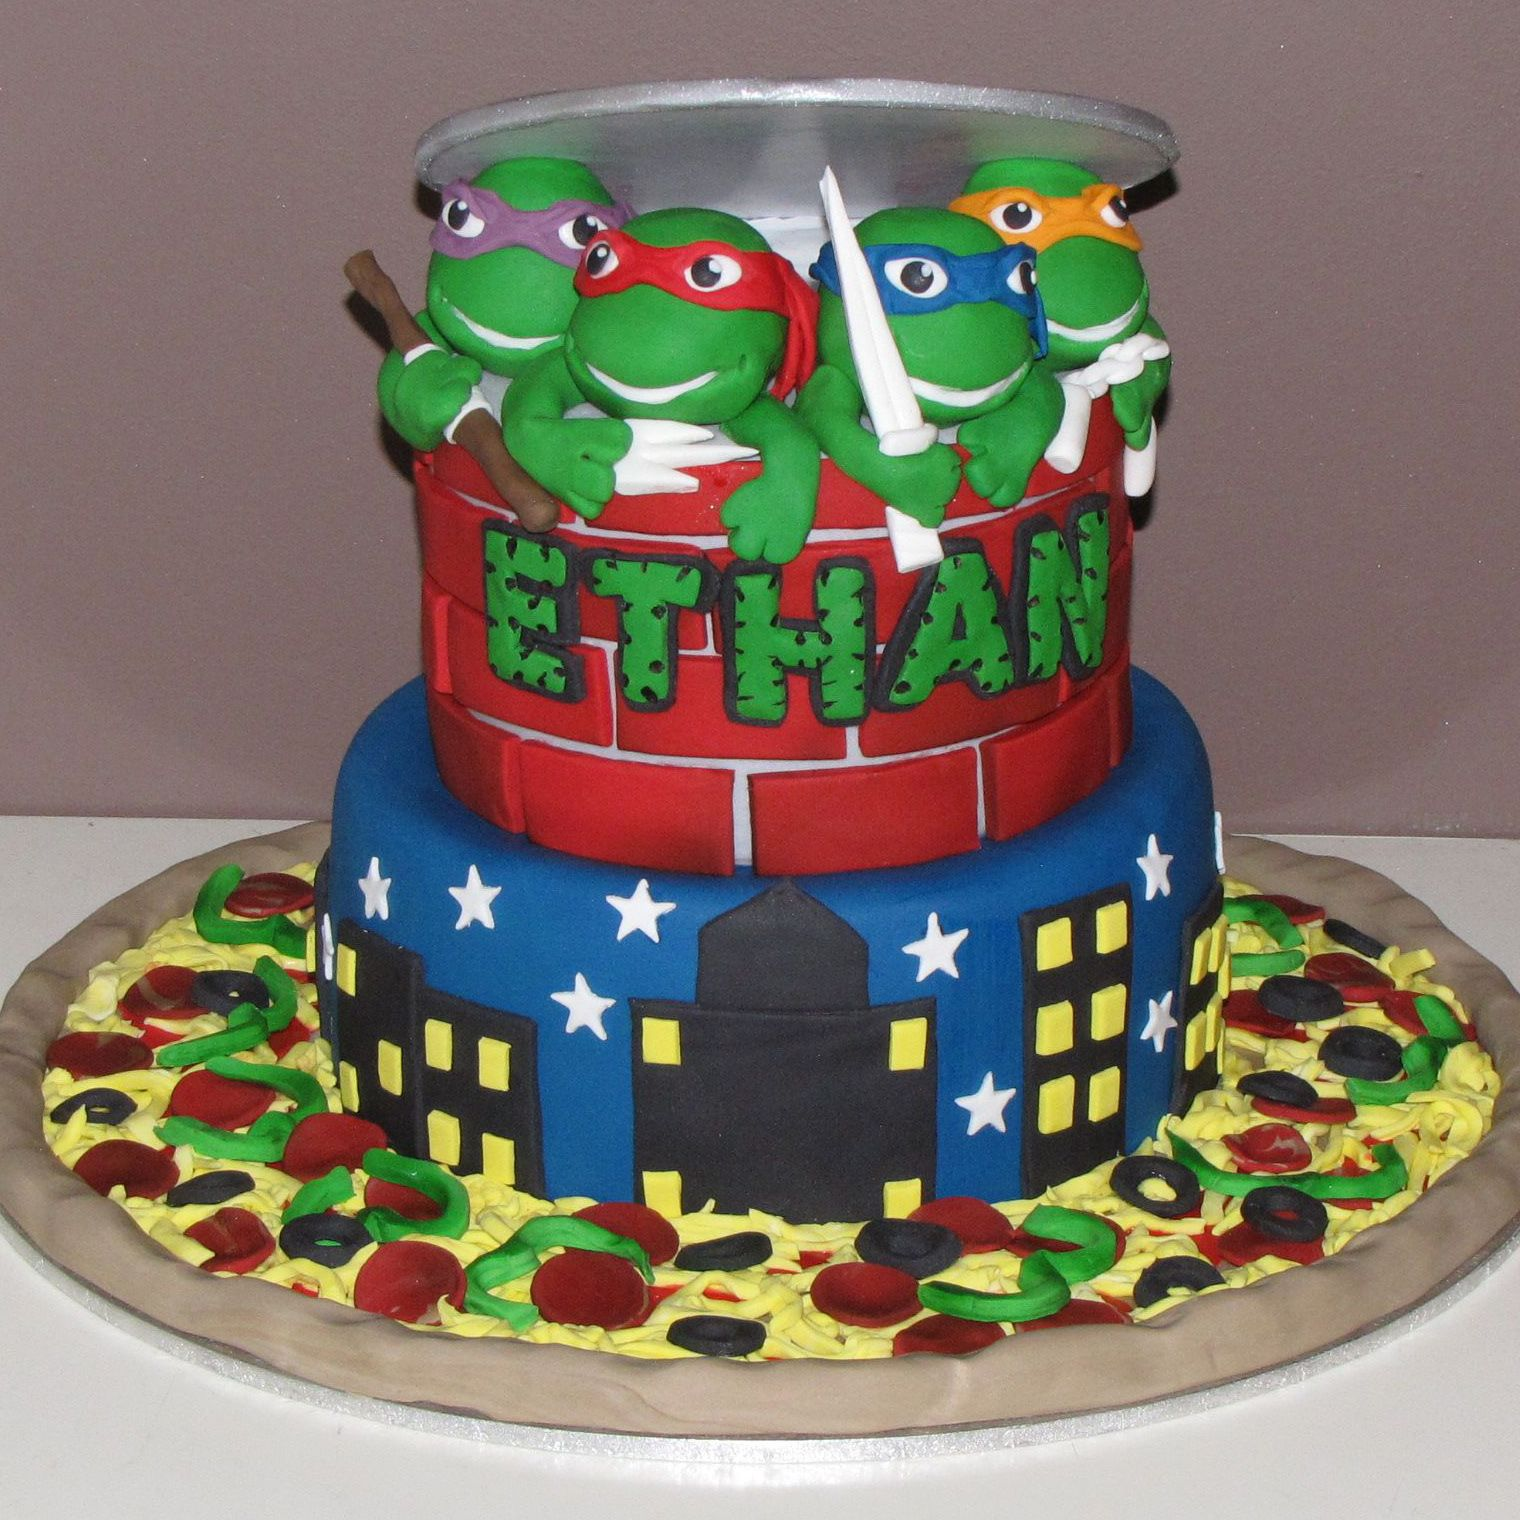 ninja turtle sheet cake - Google Search | Jordan 4th bday ...